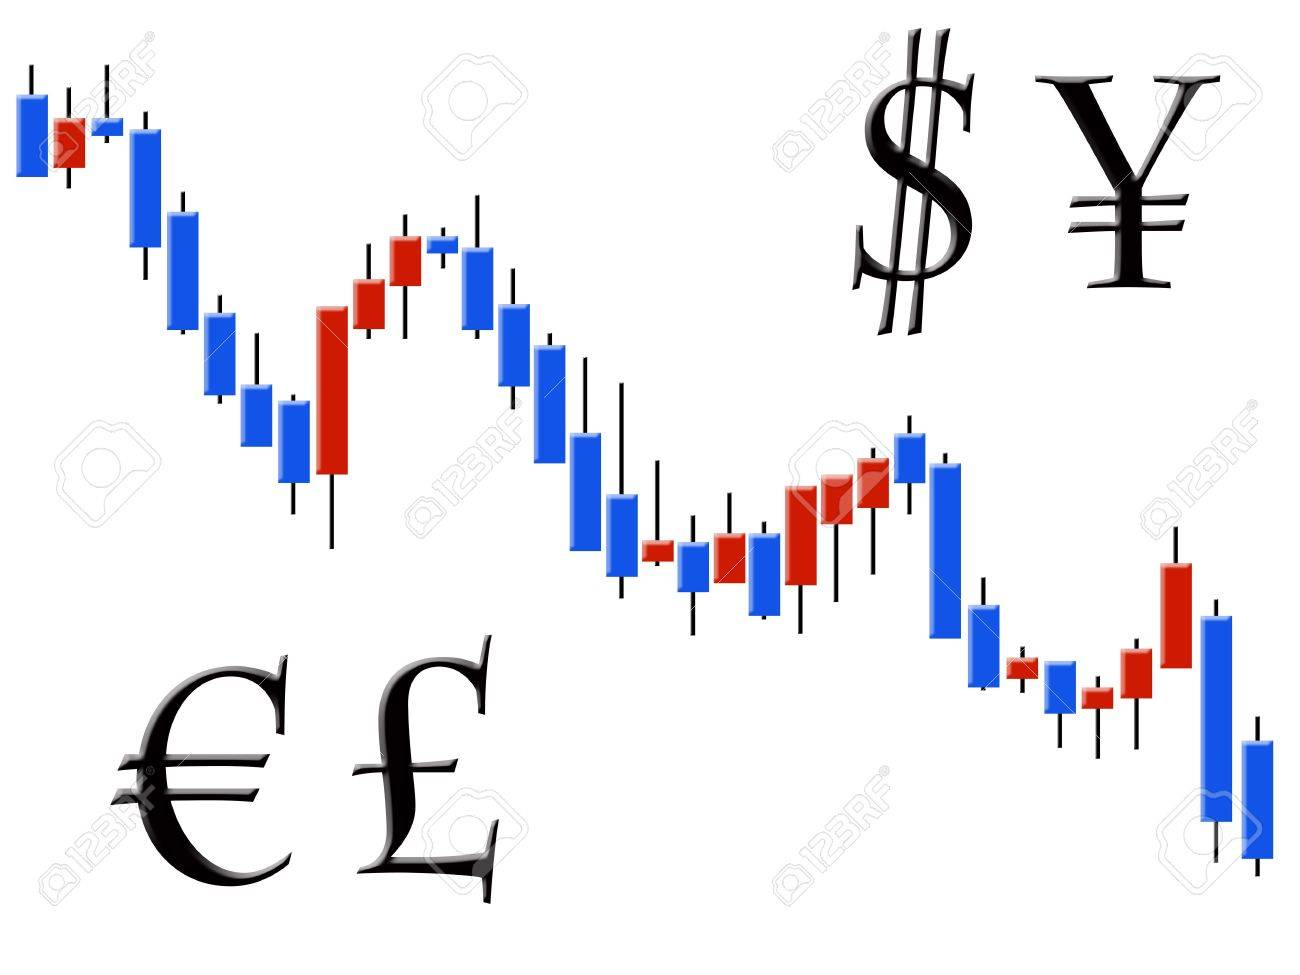 The schedule forex in the form of candles against the white background Stock Photo - 6449964